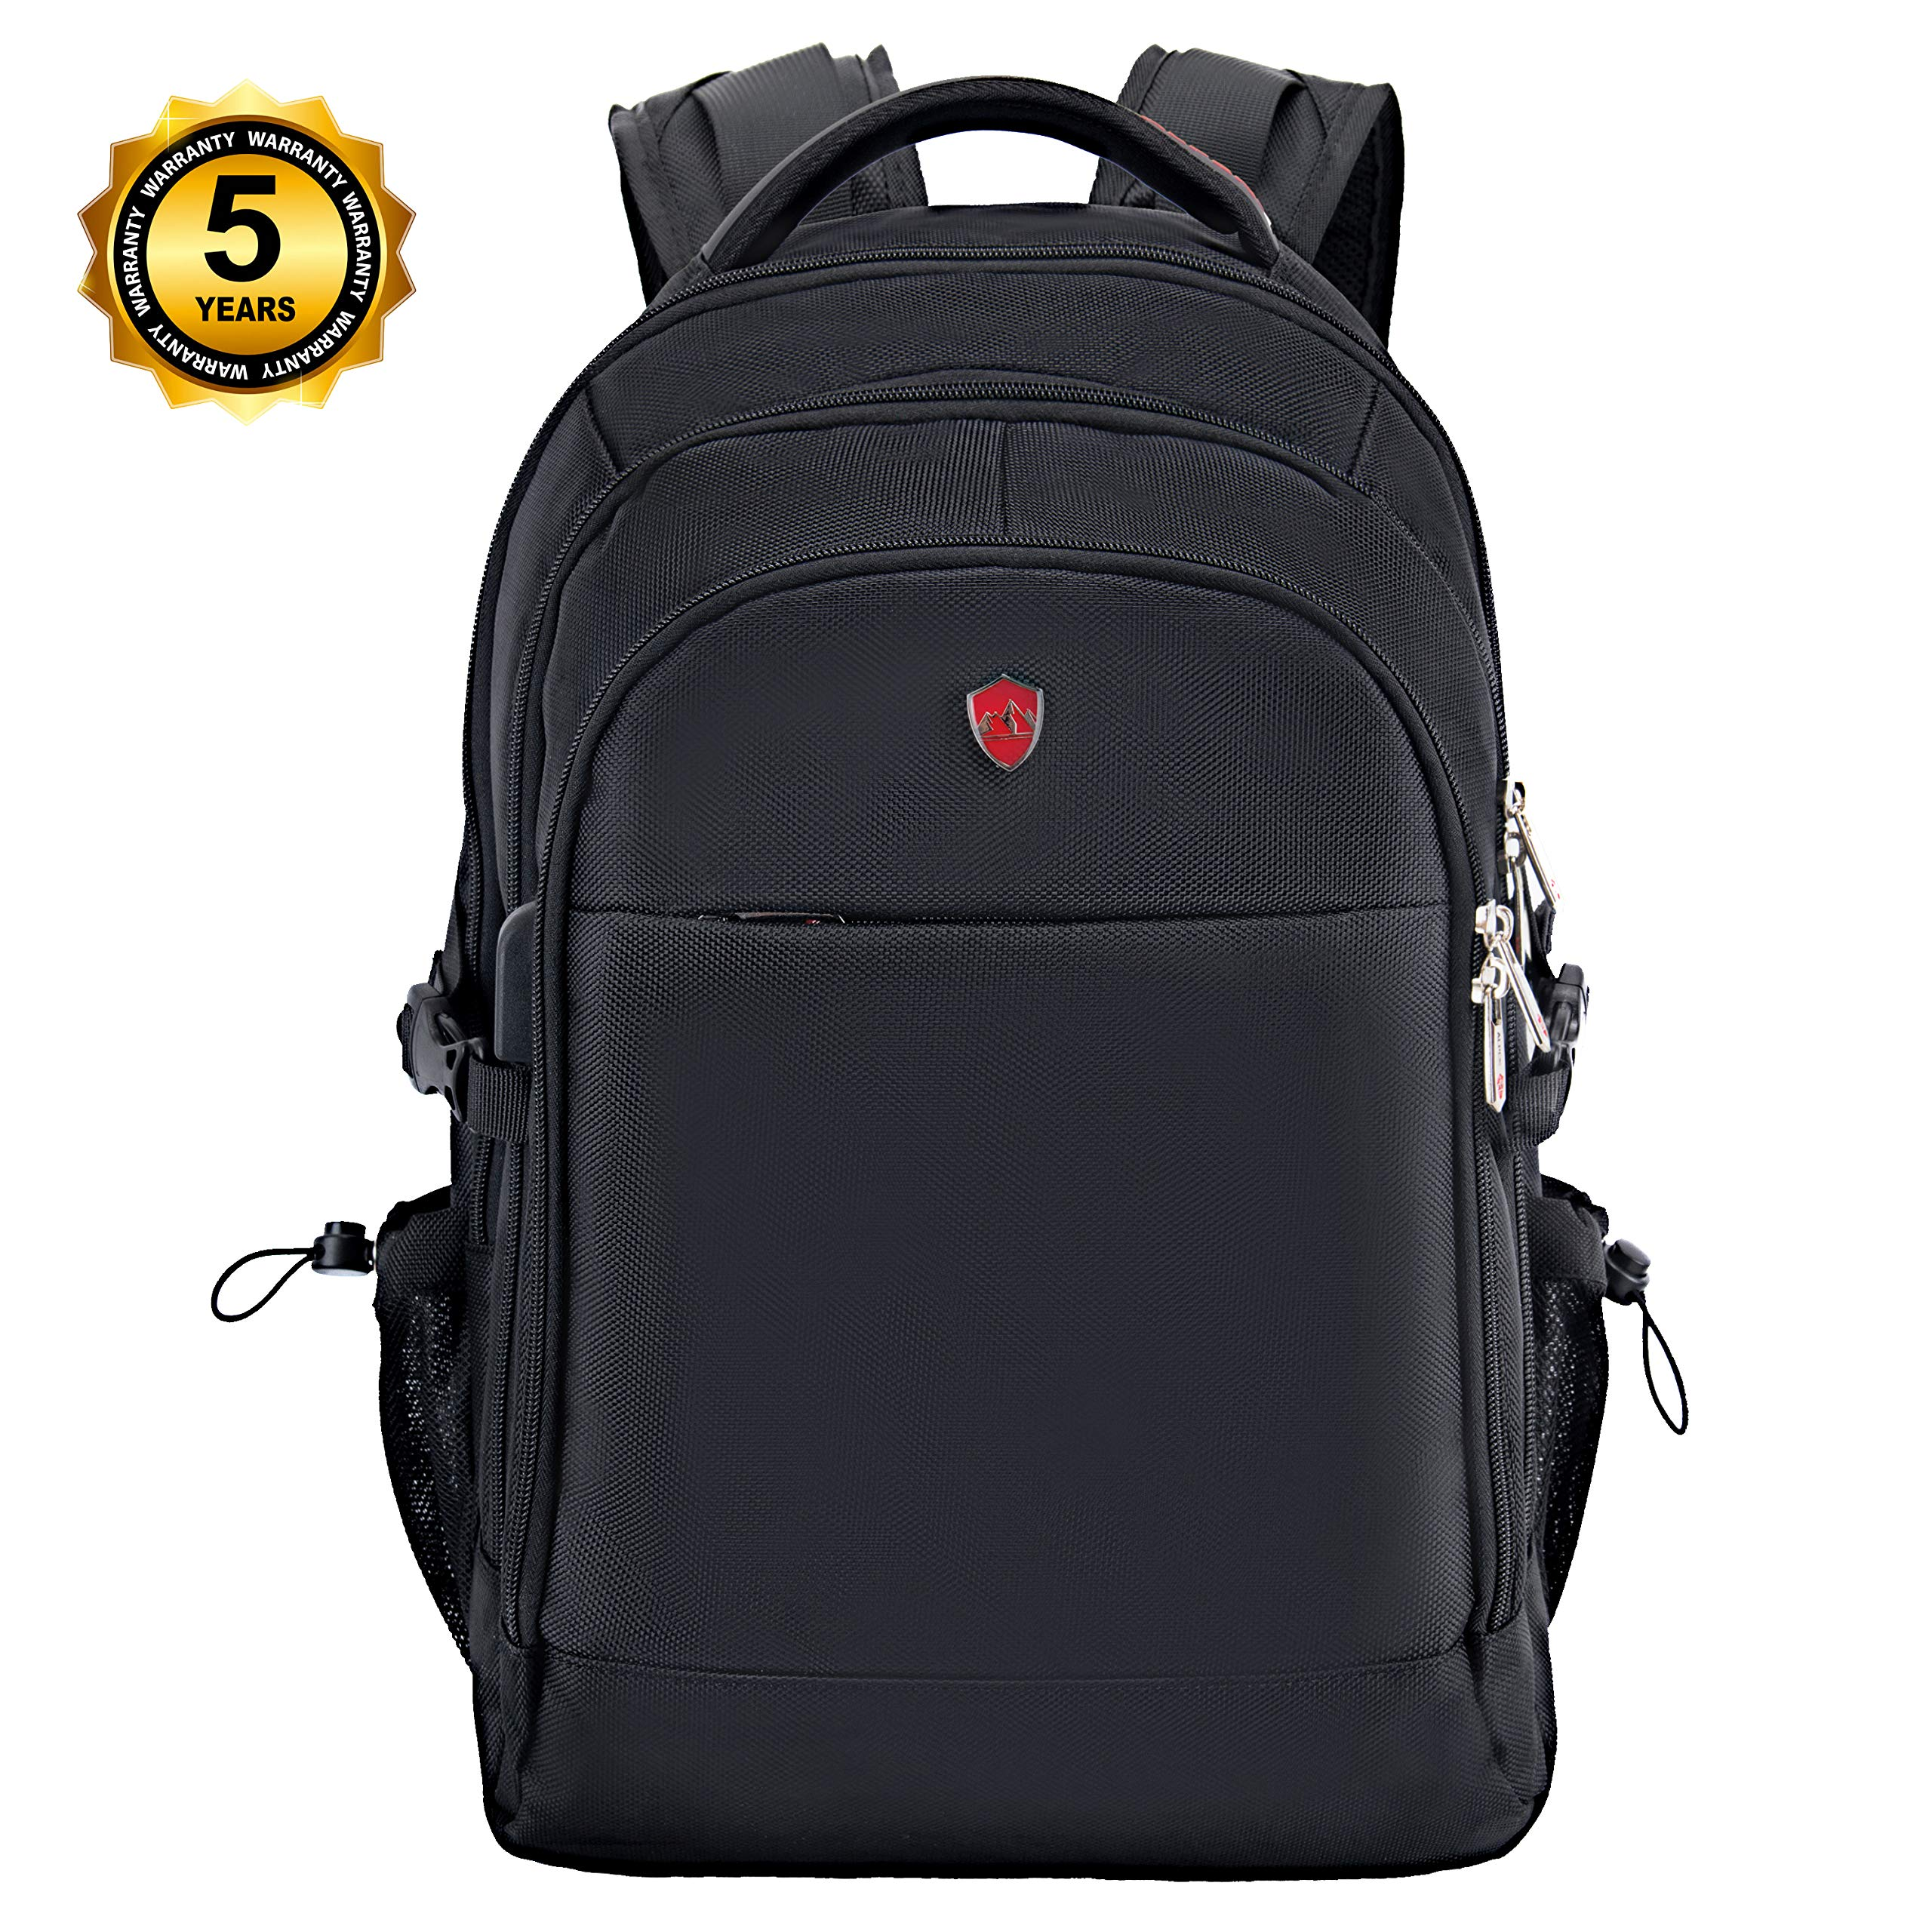 Swiss Alpen - Combin Backpack - Water Resistant Durable 1680D Large Laptop Backpack for Travel, School & Business - Fits 15.6'' Laptop with USB Charging Port - Black Exclusive by Swiss Alpen